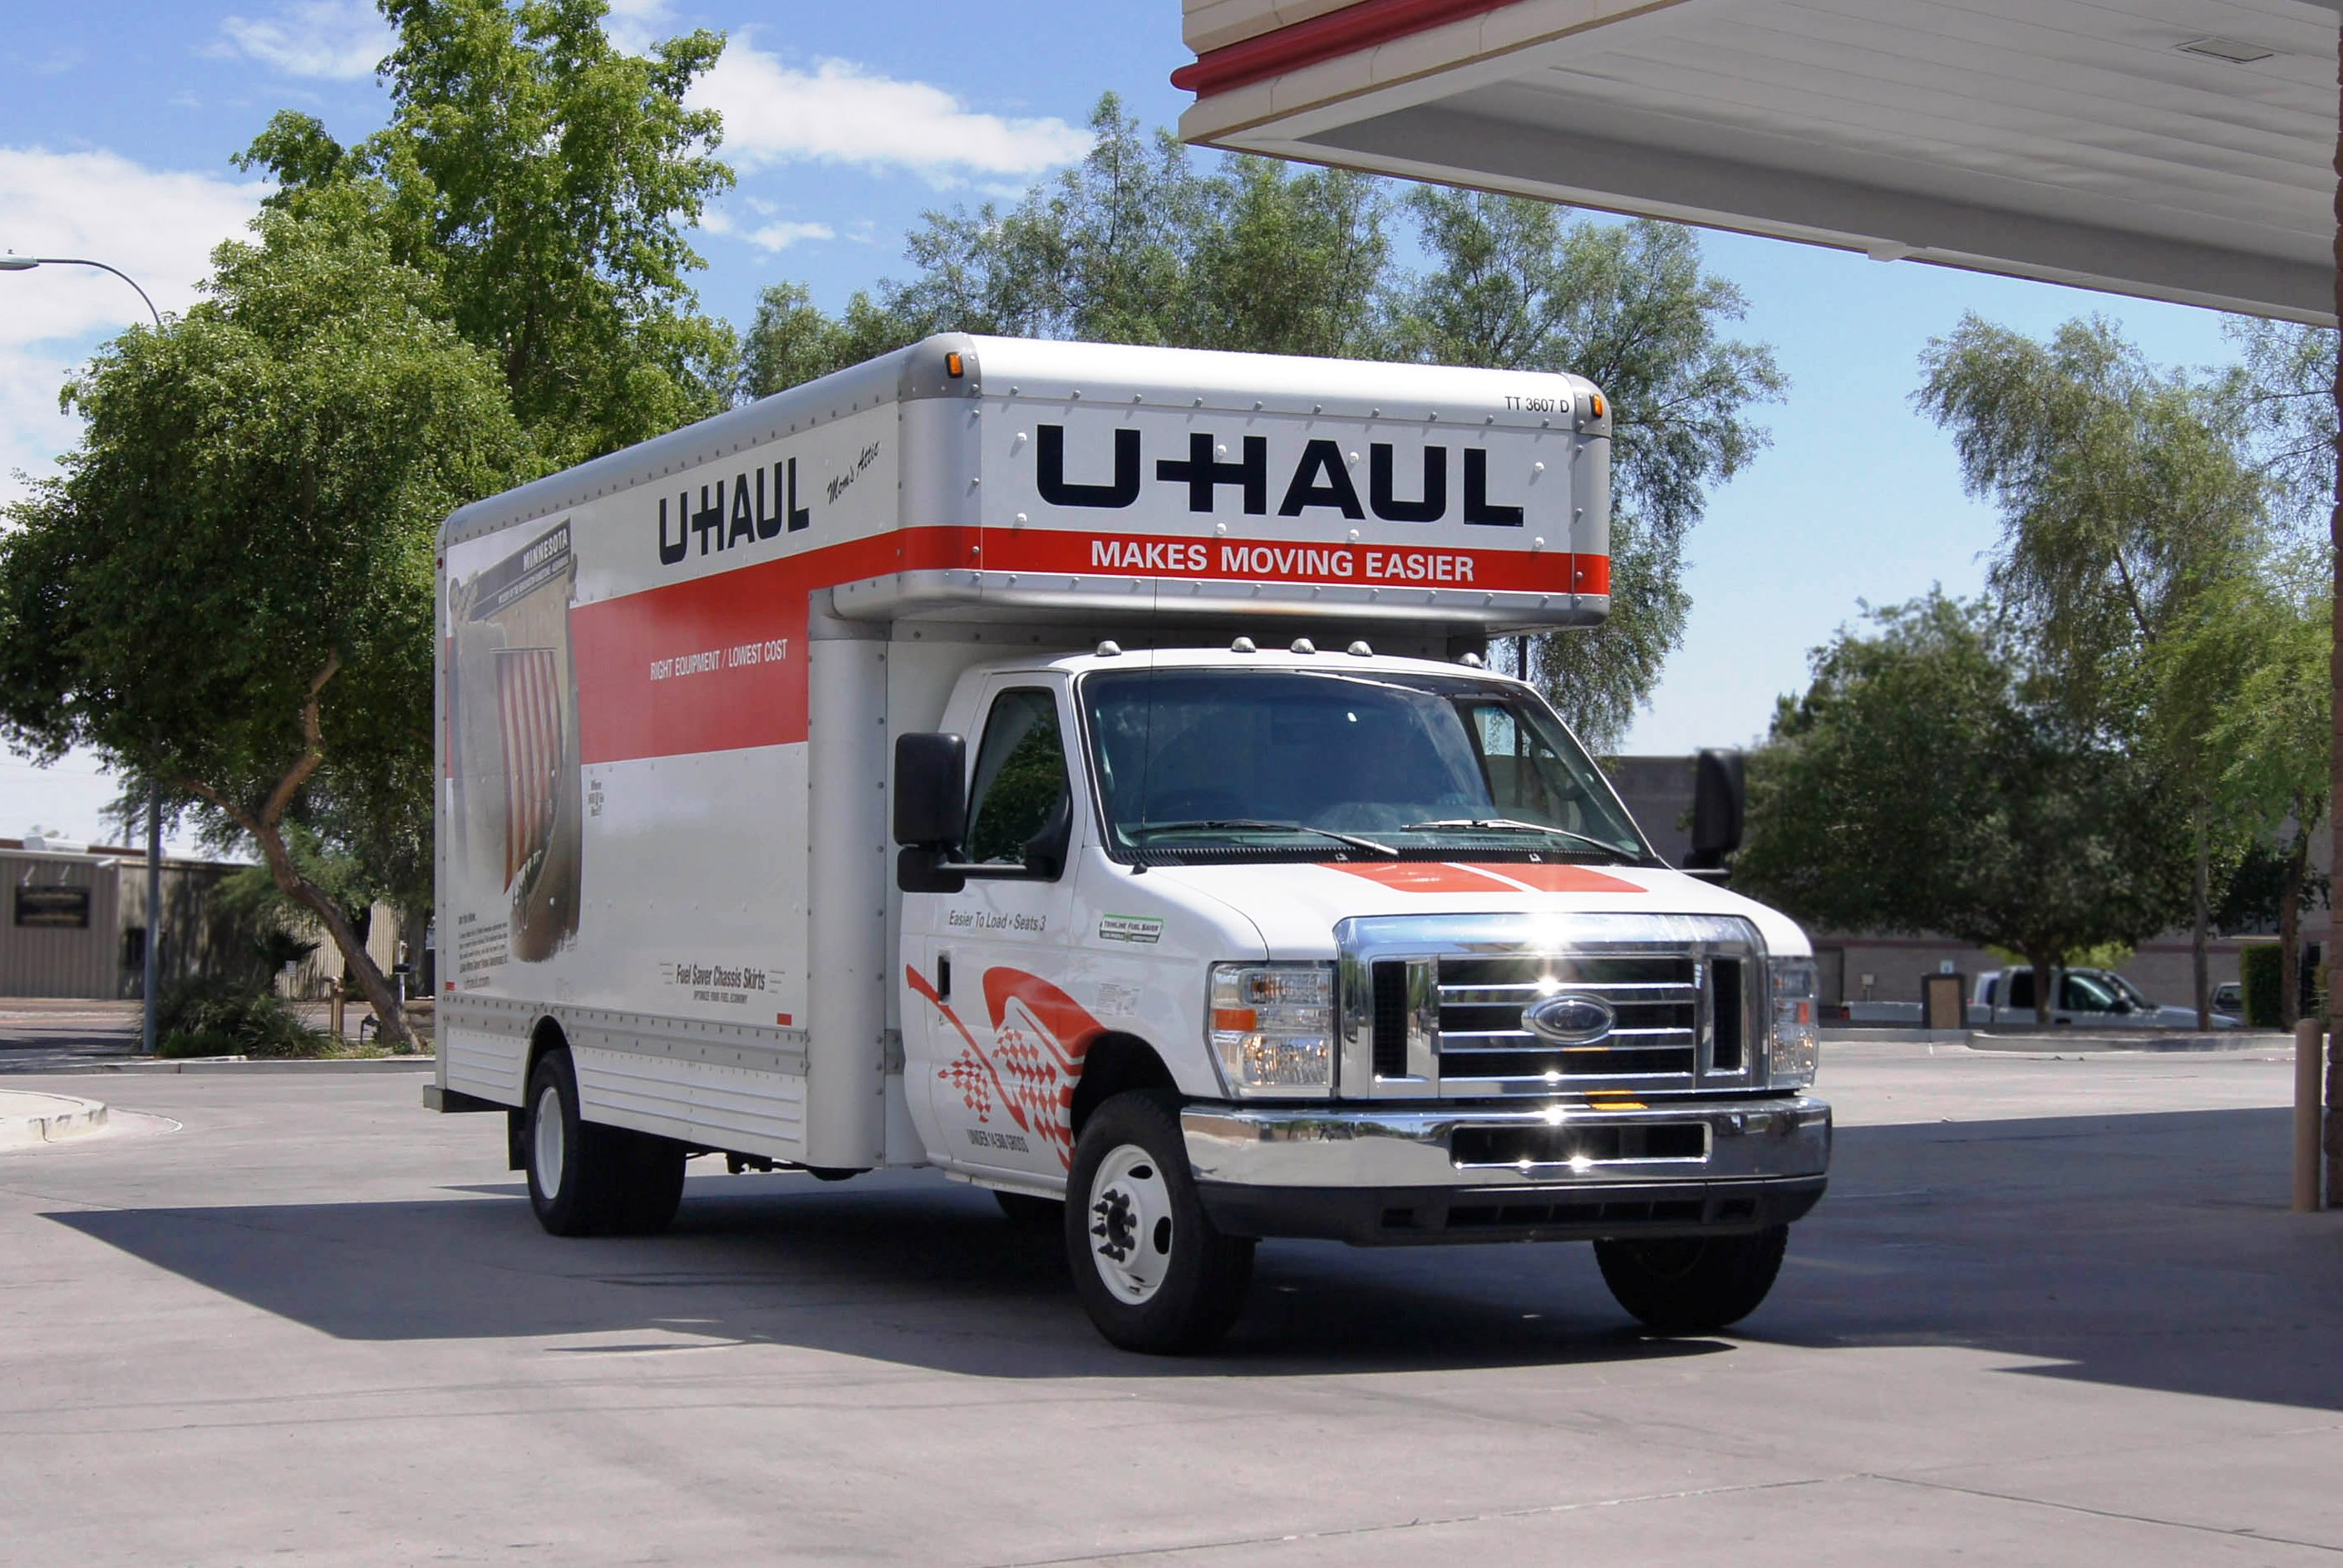 Original review: Nov. 30, On April 16, , I entered into an equipment contract with U-Haul Moving & Storage of Philadelphia for the rental of a moving truck.